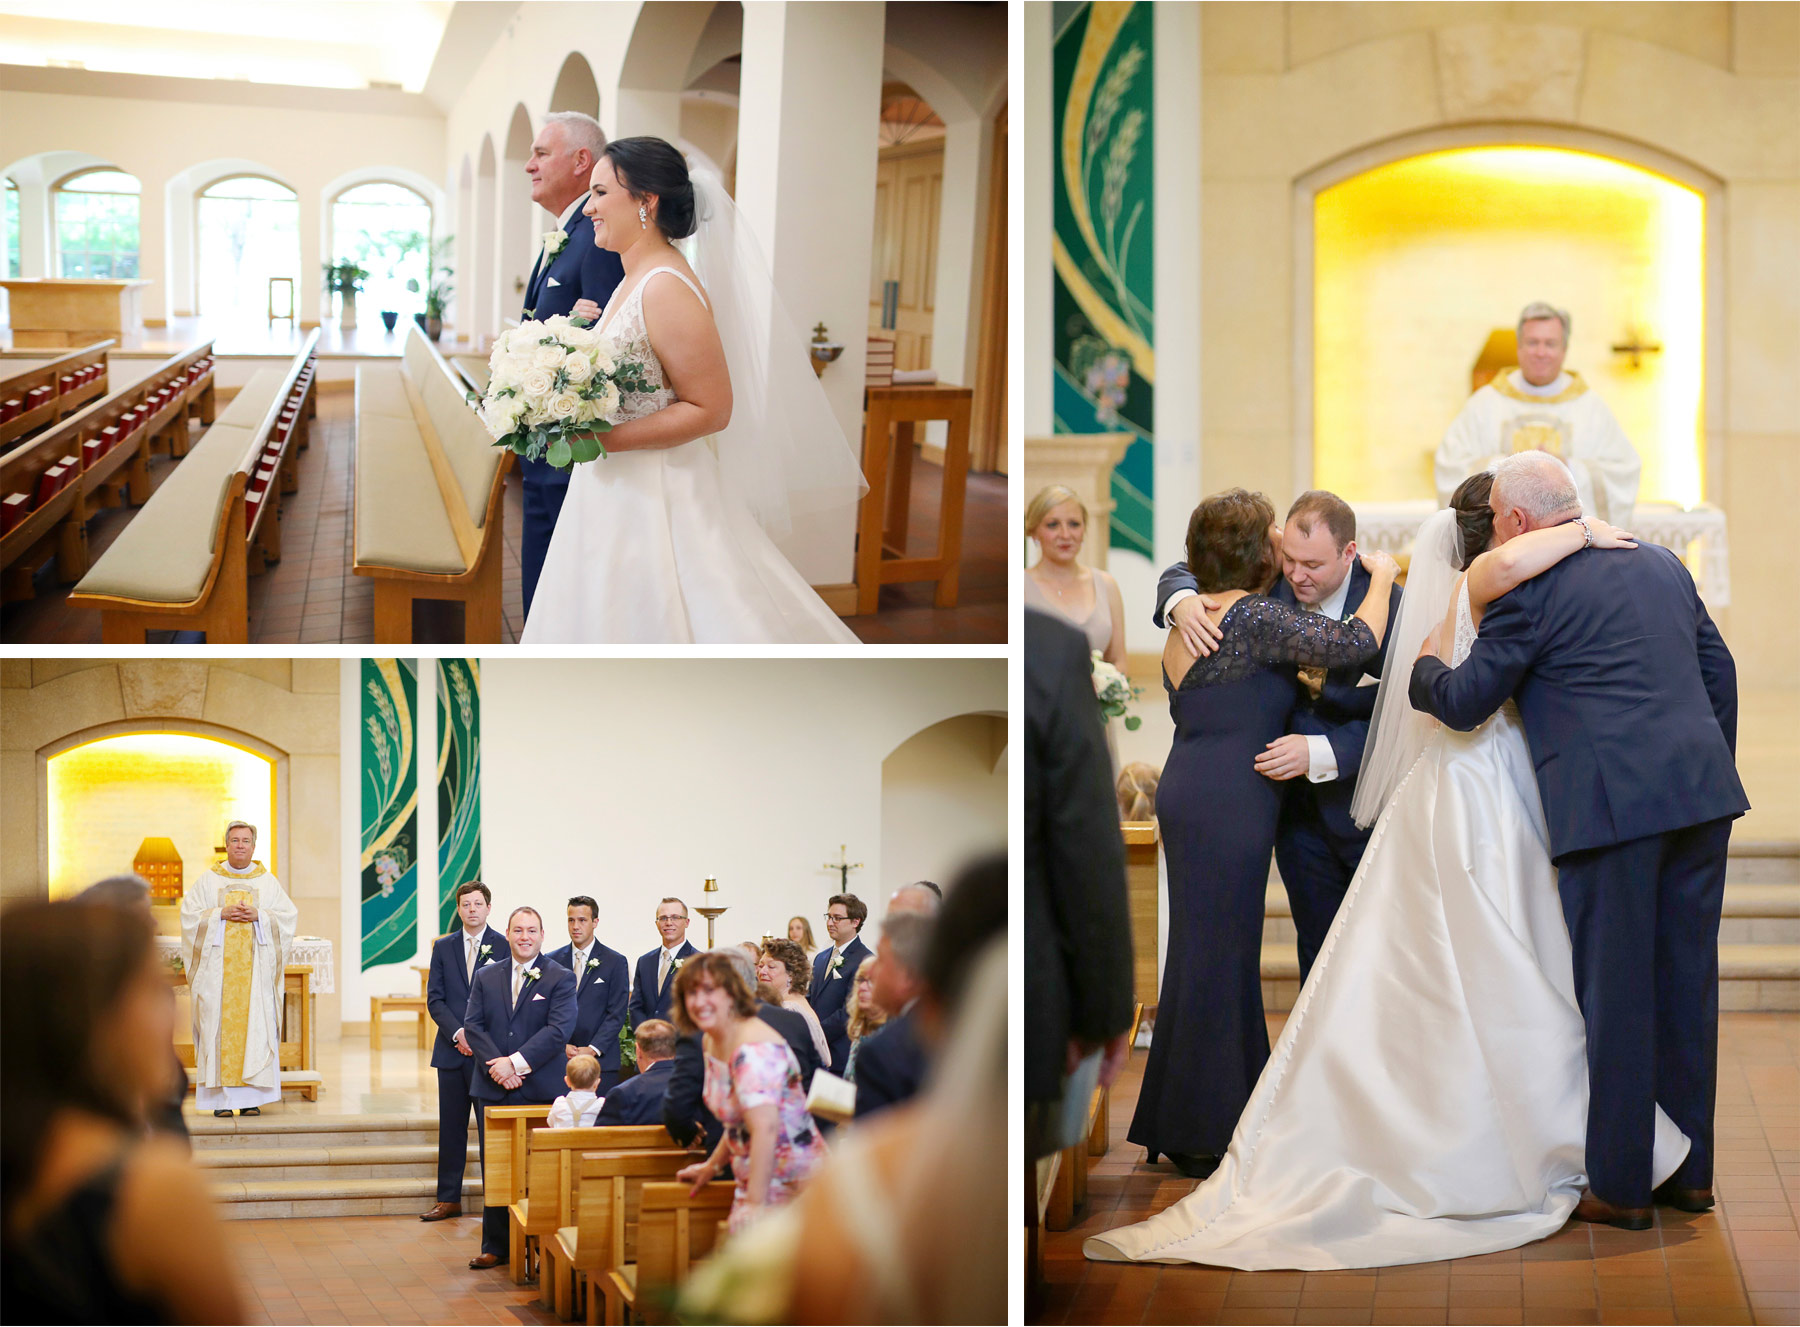 11-Vick-Photography-Wedding-Minneapolis-Minnesota-Our-Lady-of-Grace-Catholic-Church-Ceremony-Hug-Erin-and-David.jpg